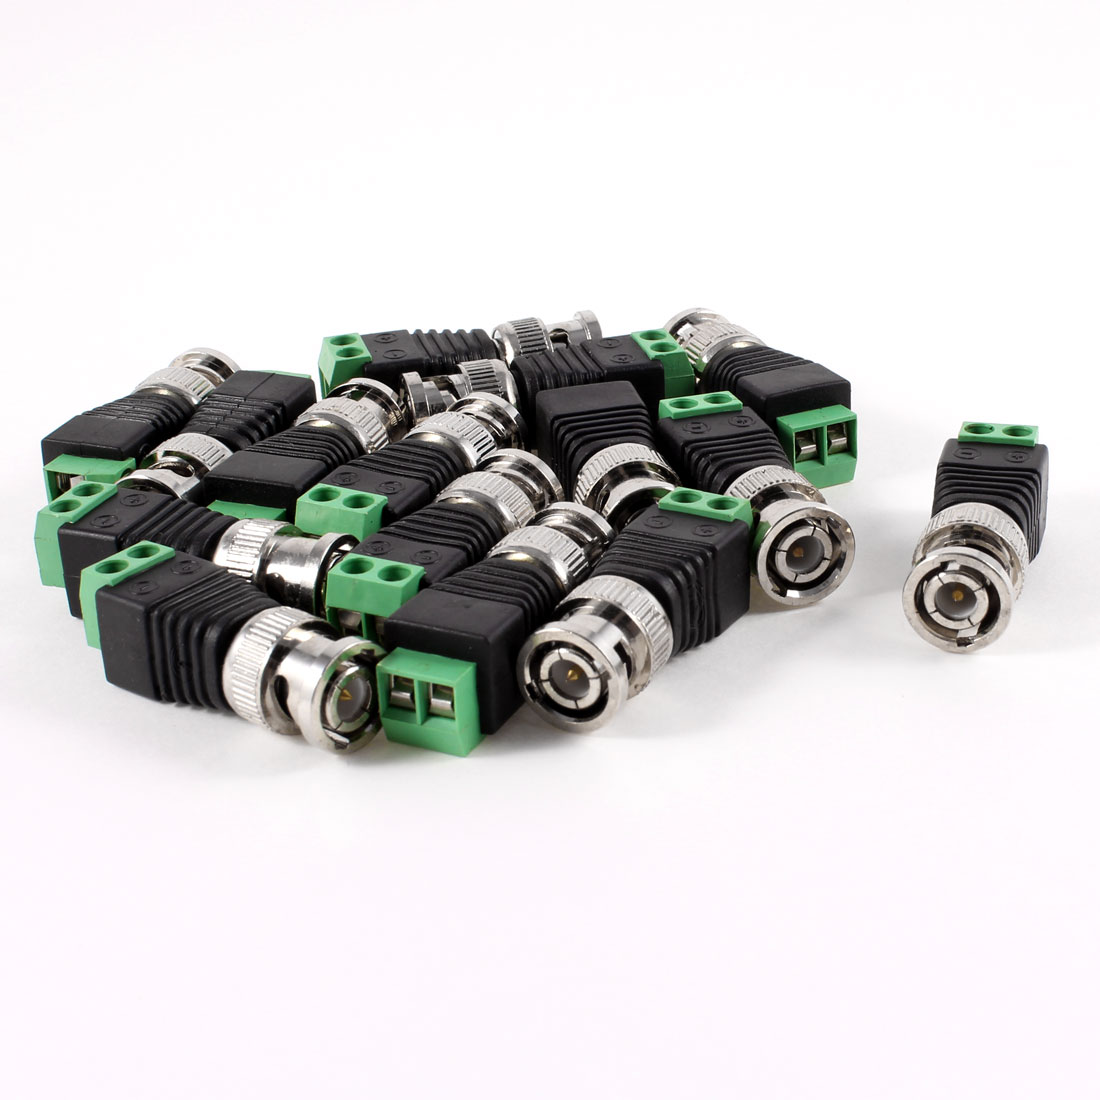 15 Pcs Screw Terminal Coaxial Coax Cat5 to BNC Male Video Balun Connectors